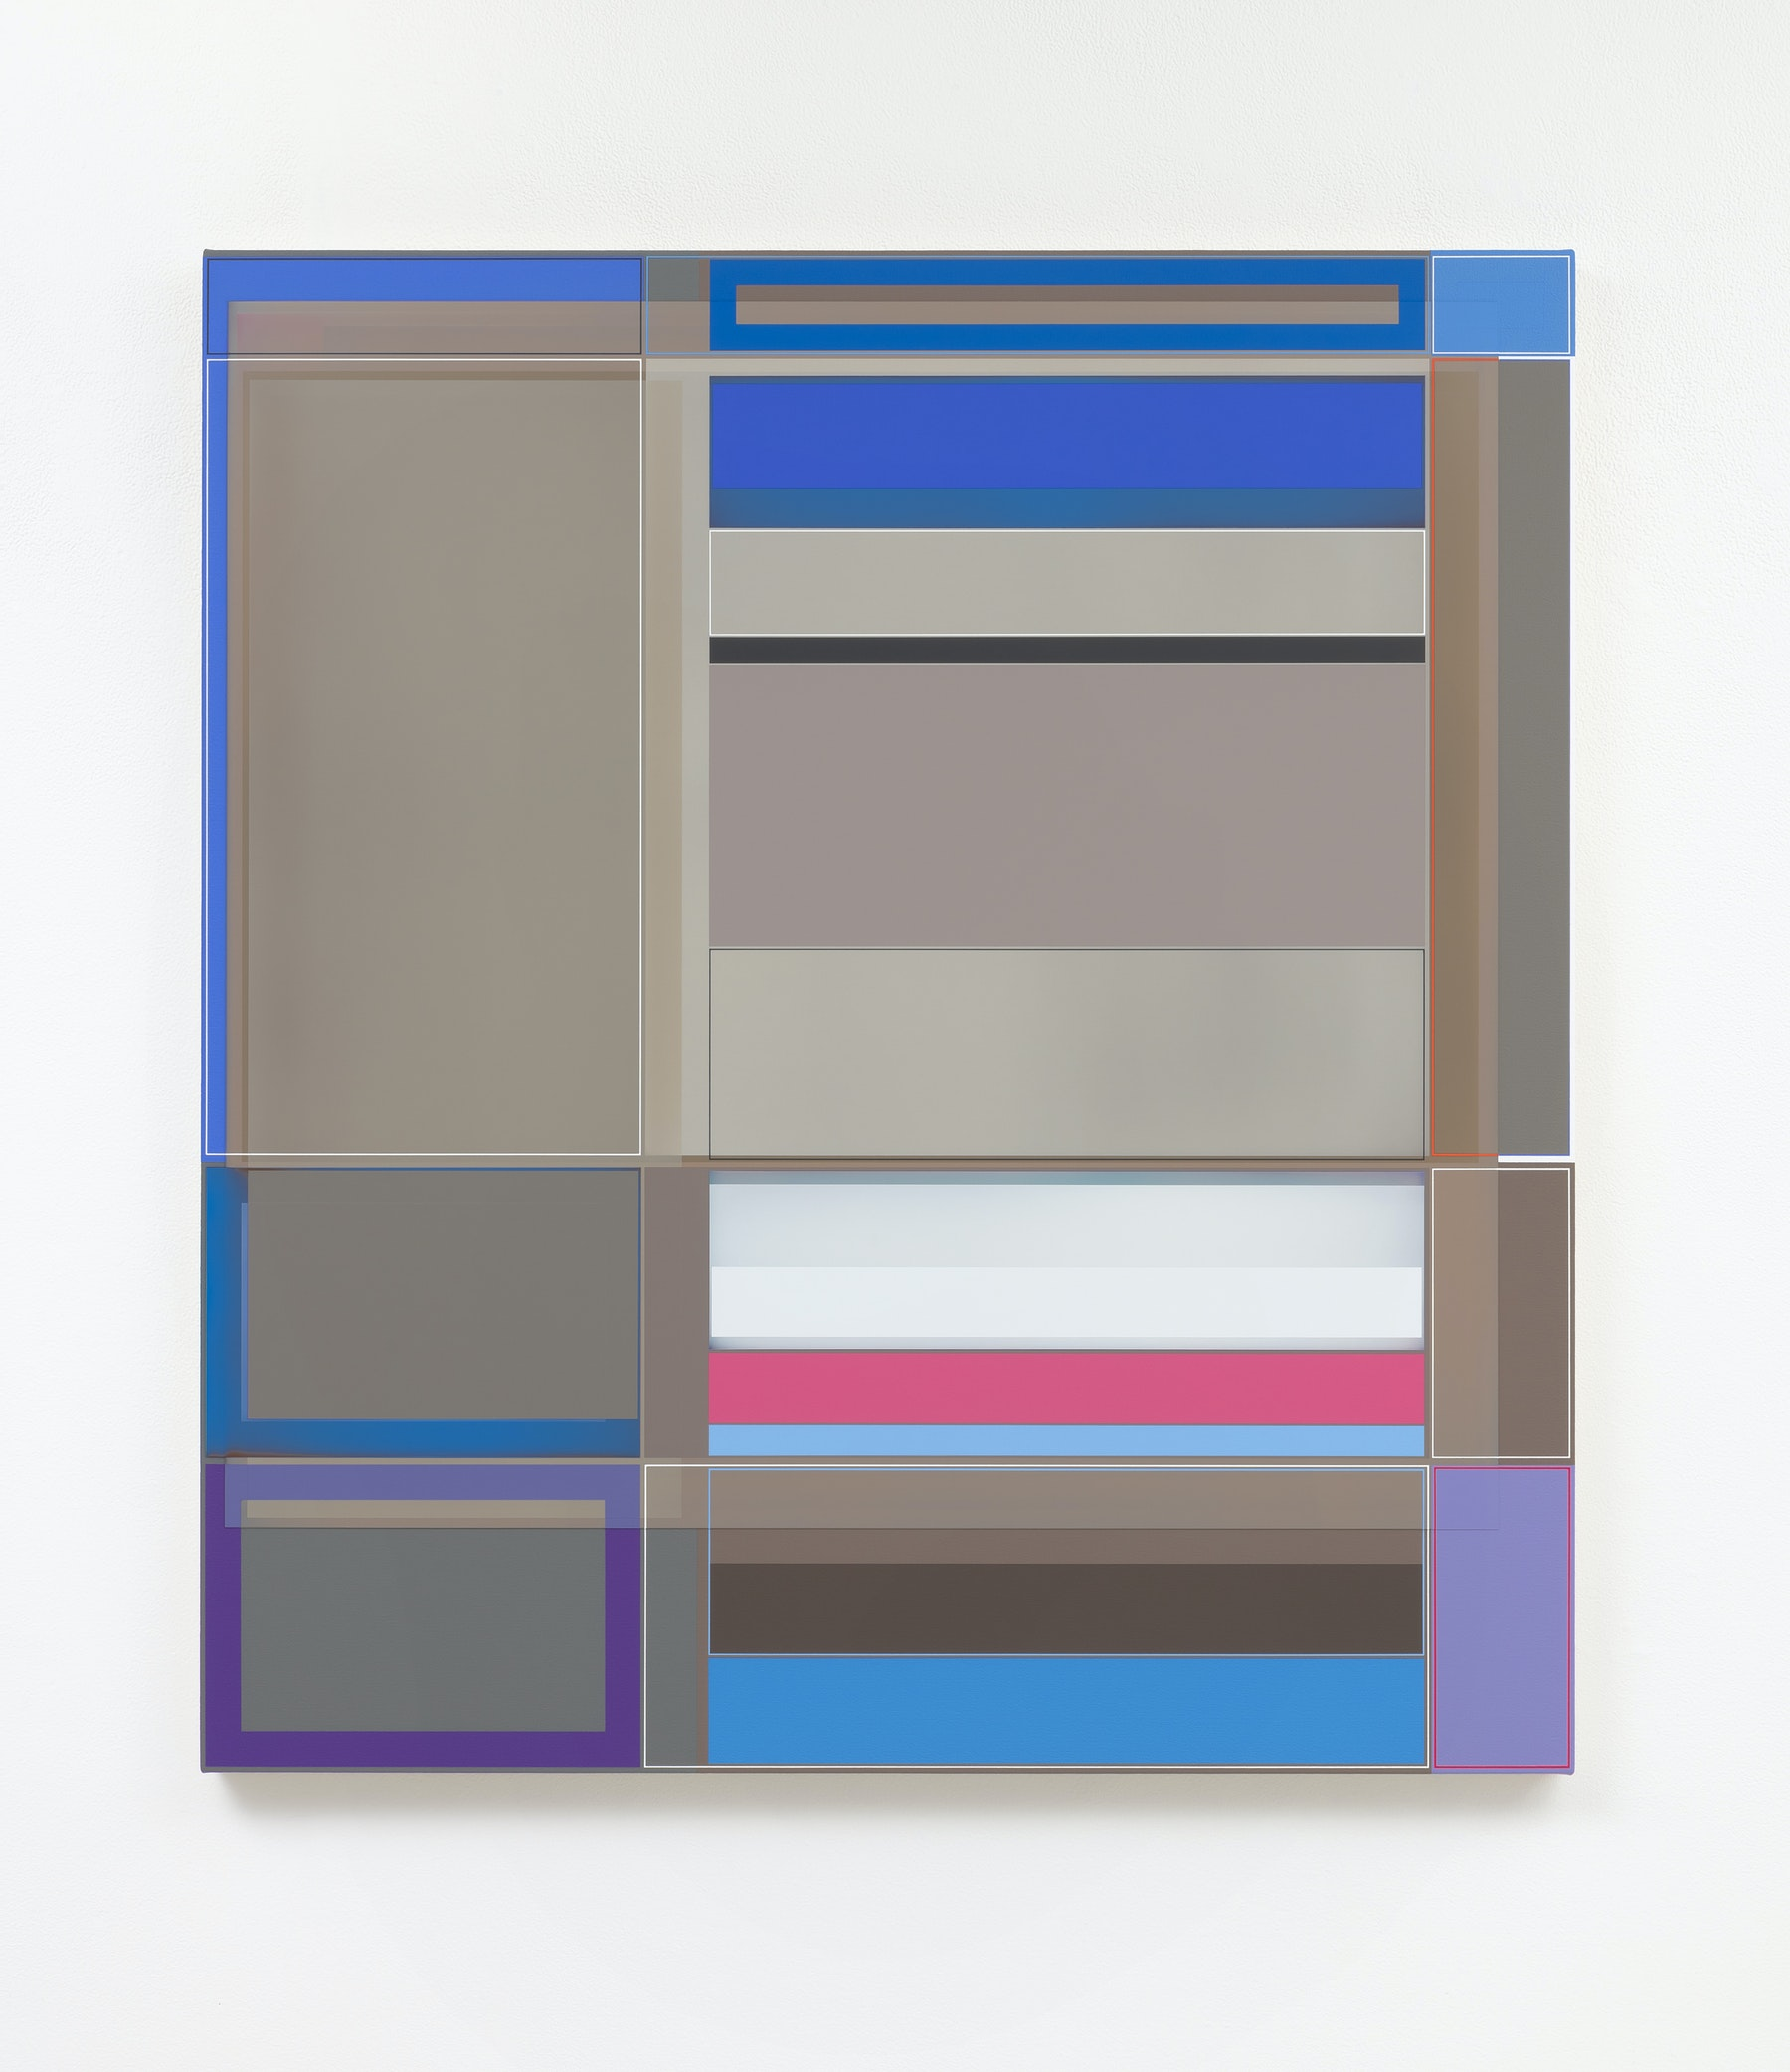 """Patrick Wilson """"Disrupted Grid (Election),"""" 2020 Acrylic on canvas 41 x 37"""" [HxW] (104.14 x 93.98 cm) Inventory #WIL585 Courtesy of the artist and Vielmetter Los Angeles Photo credit: Robert Wedemeyer"""